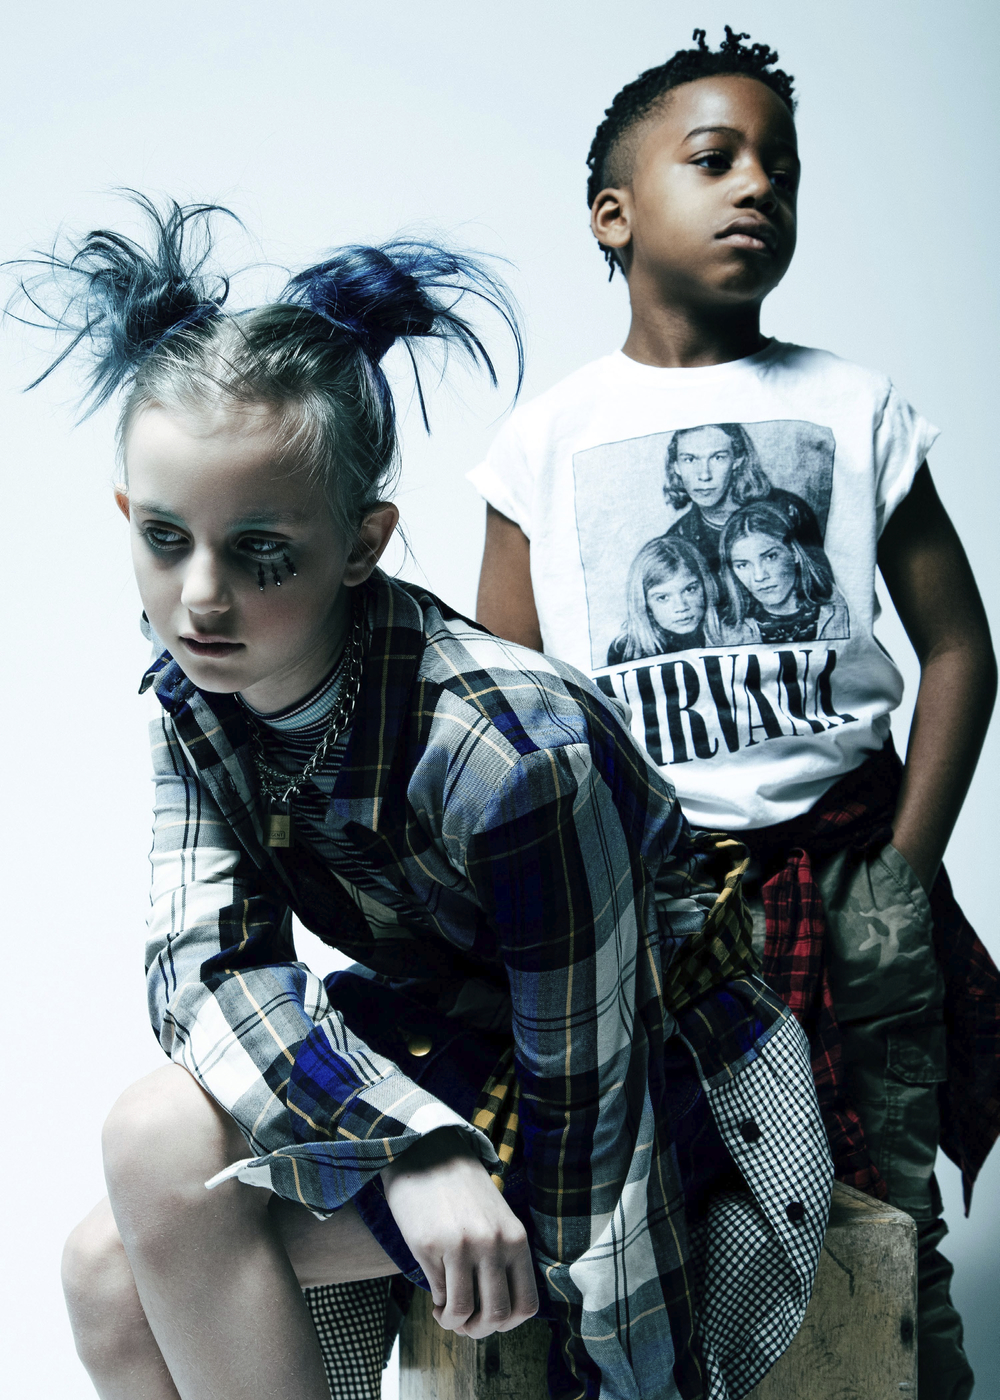 Punk Rock Kids - Children's Fashion Editorial by Mark Binks